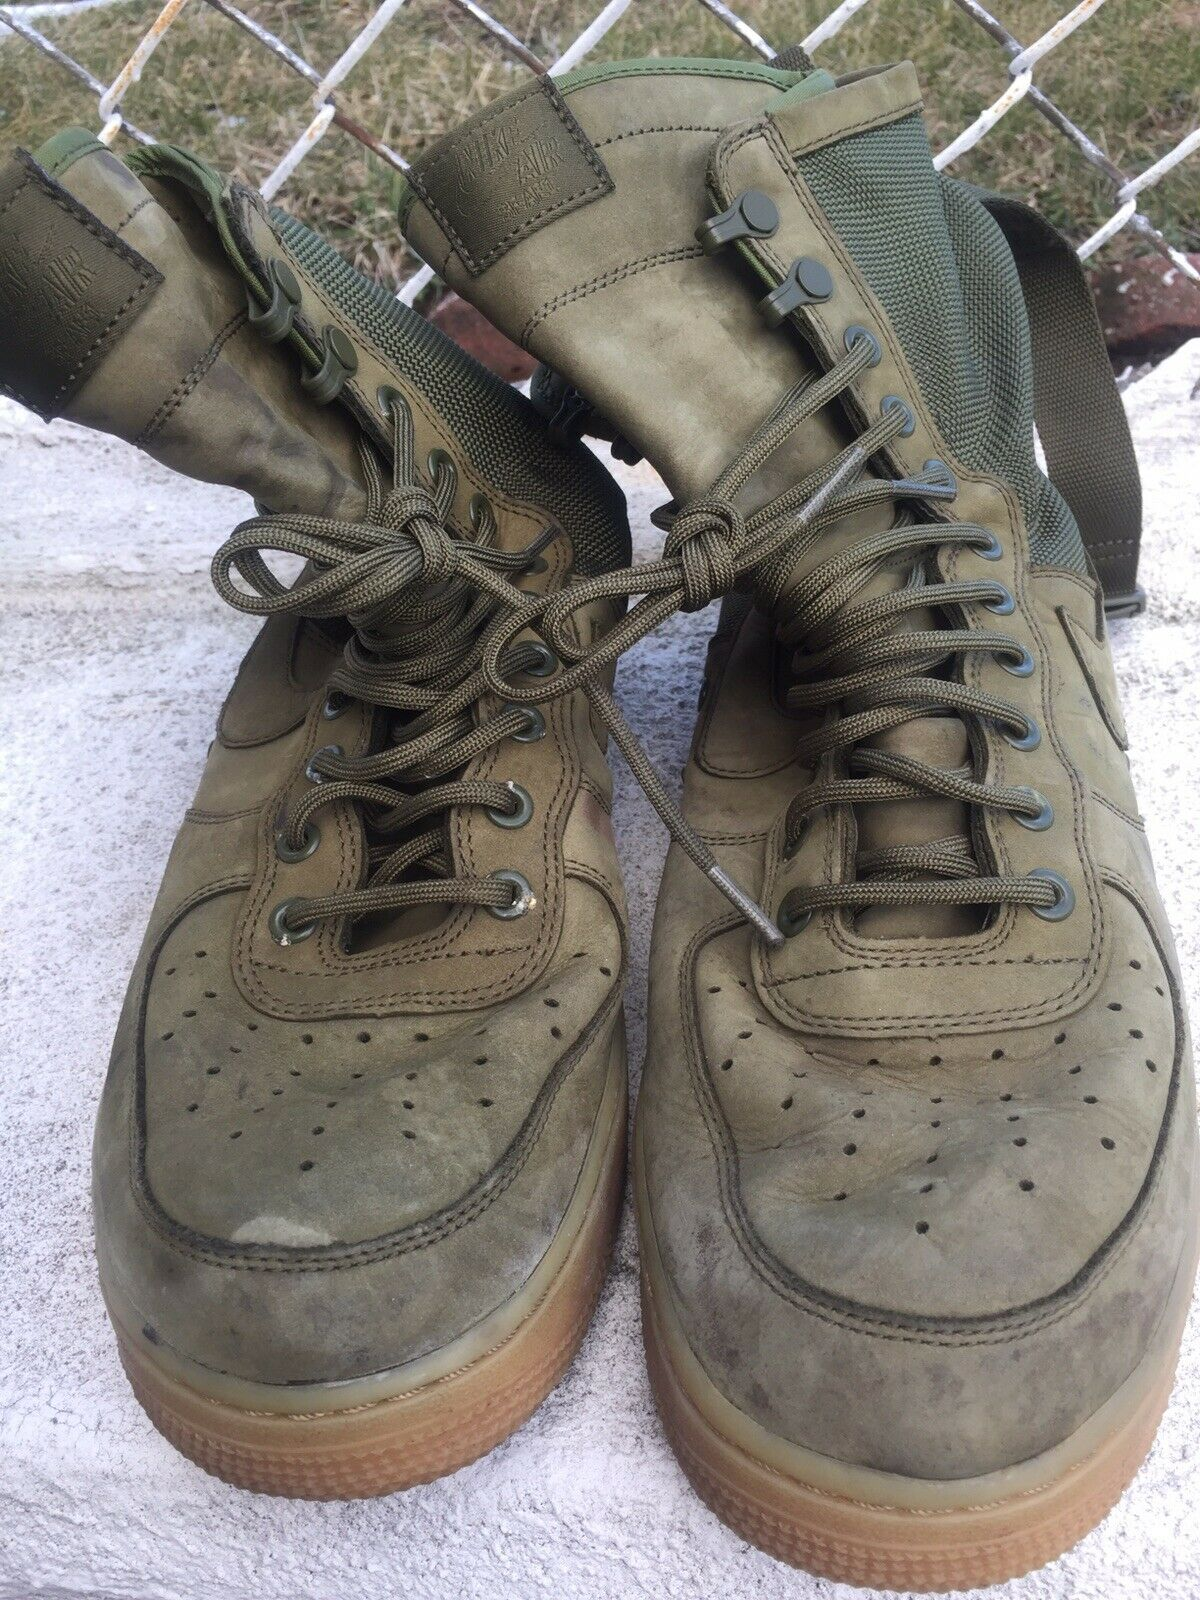 Nike Special Field Air Force 1 859202-339 SF AF1 Olive Green nikelab Size 10.5